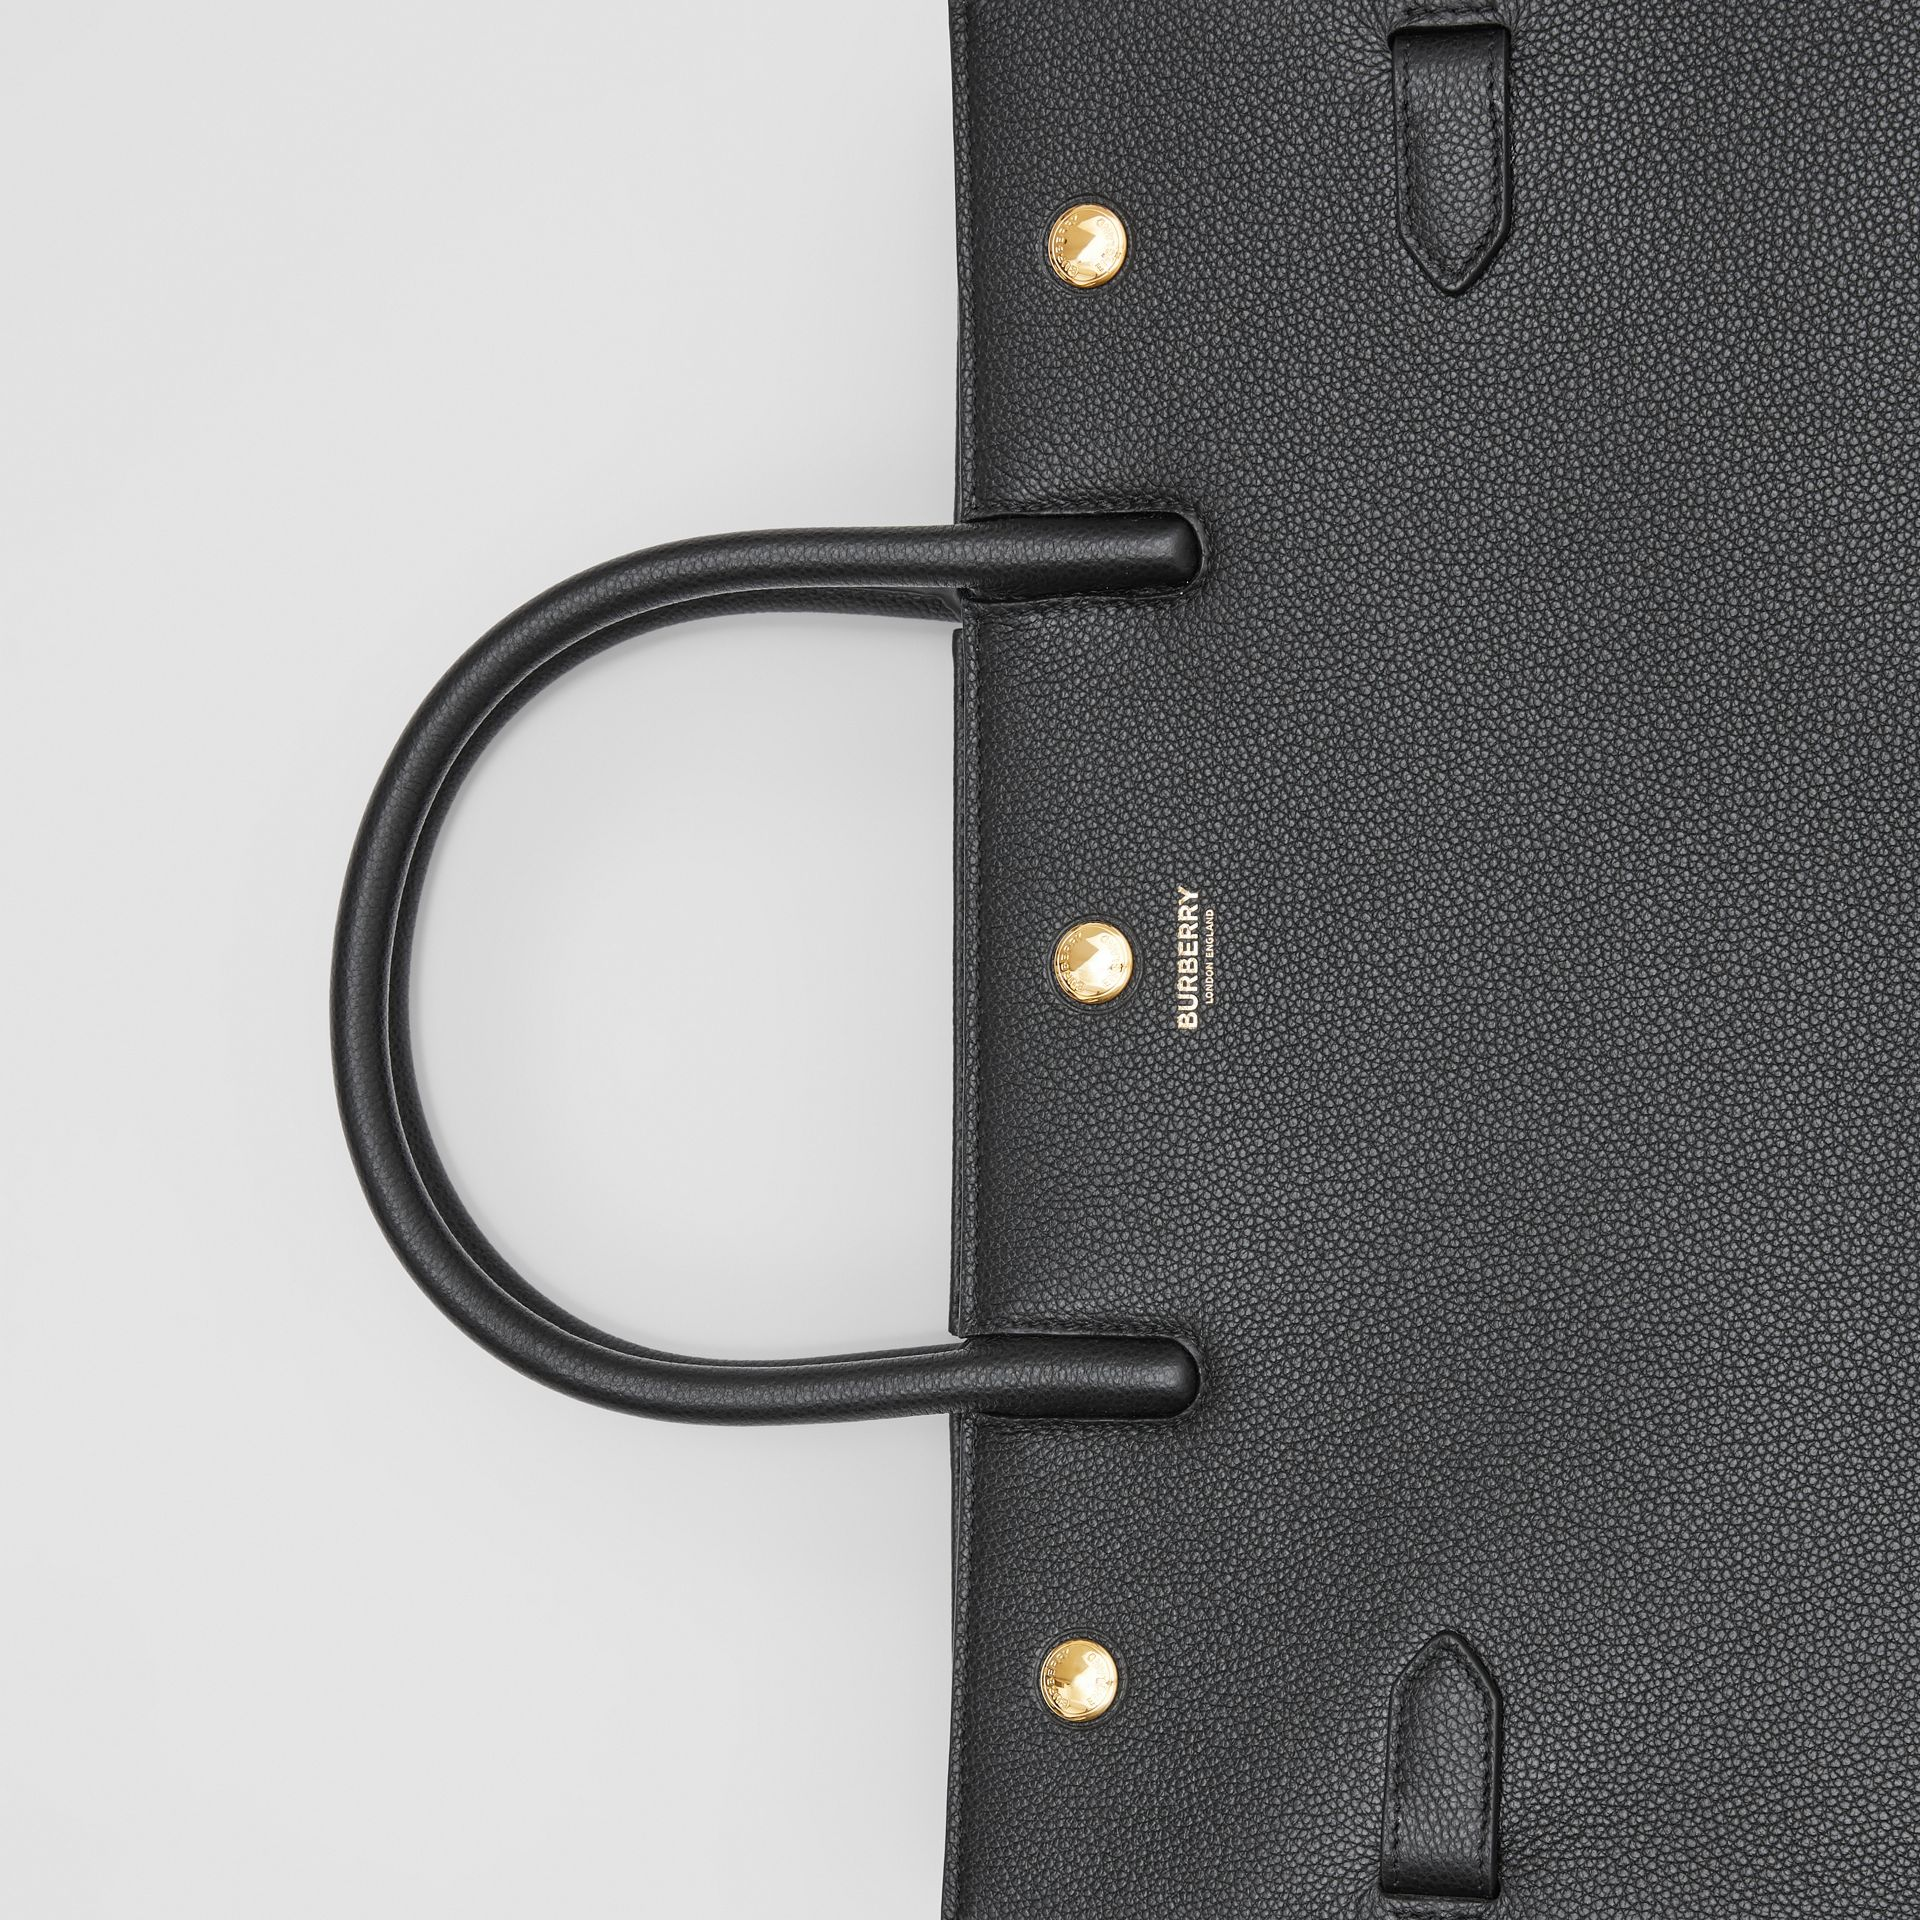 Medium Leather Two-handle Title Bag in Black - Women | Burberry - gallery image 1